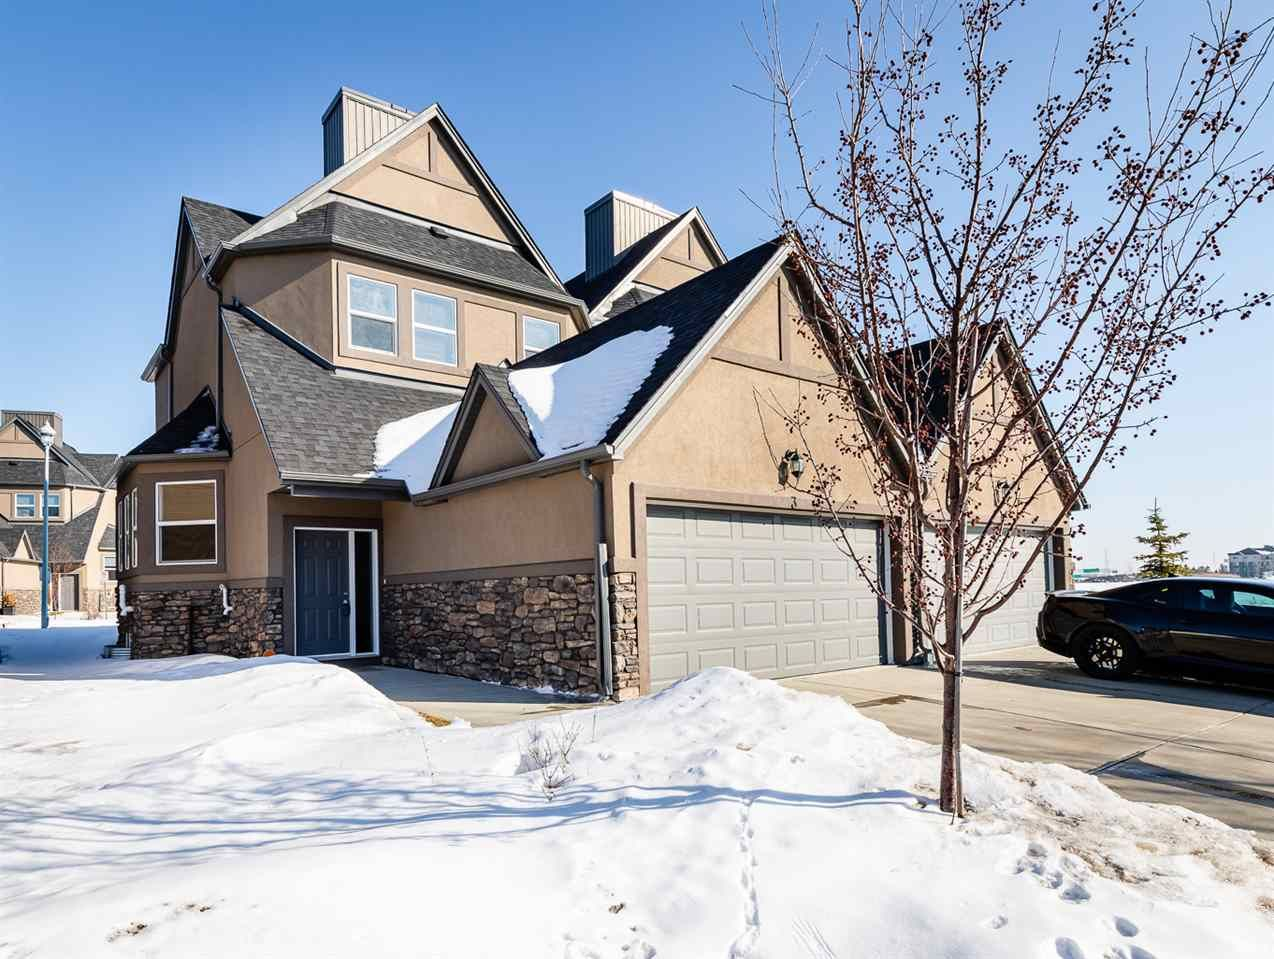 Main Photo: 3 1720 GARNETT Point in Edmonton: Zone 58 House Half Duplex for sale : MLS®# E4226231